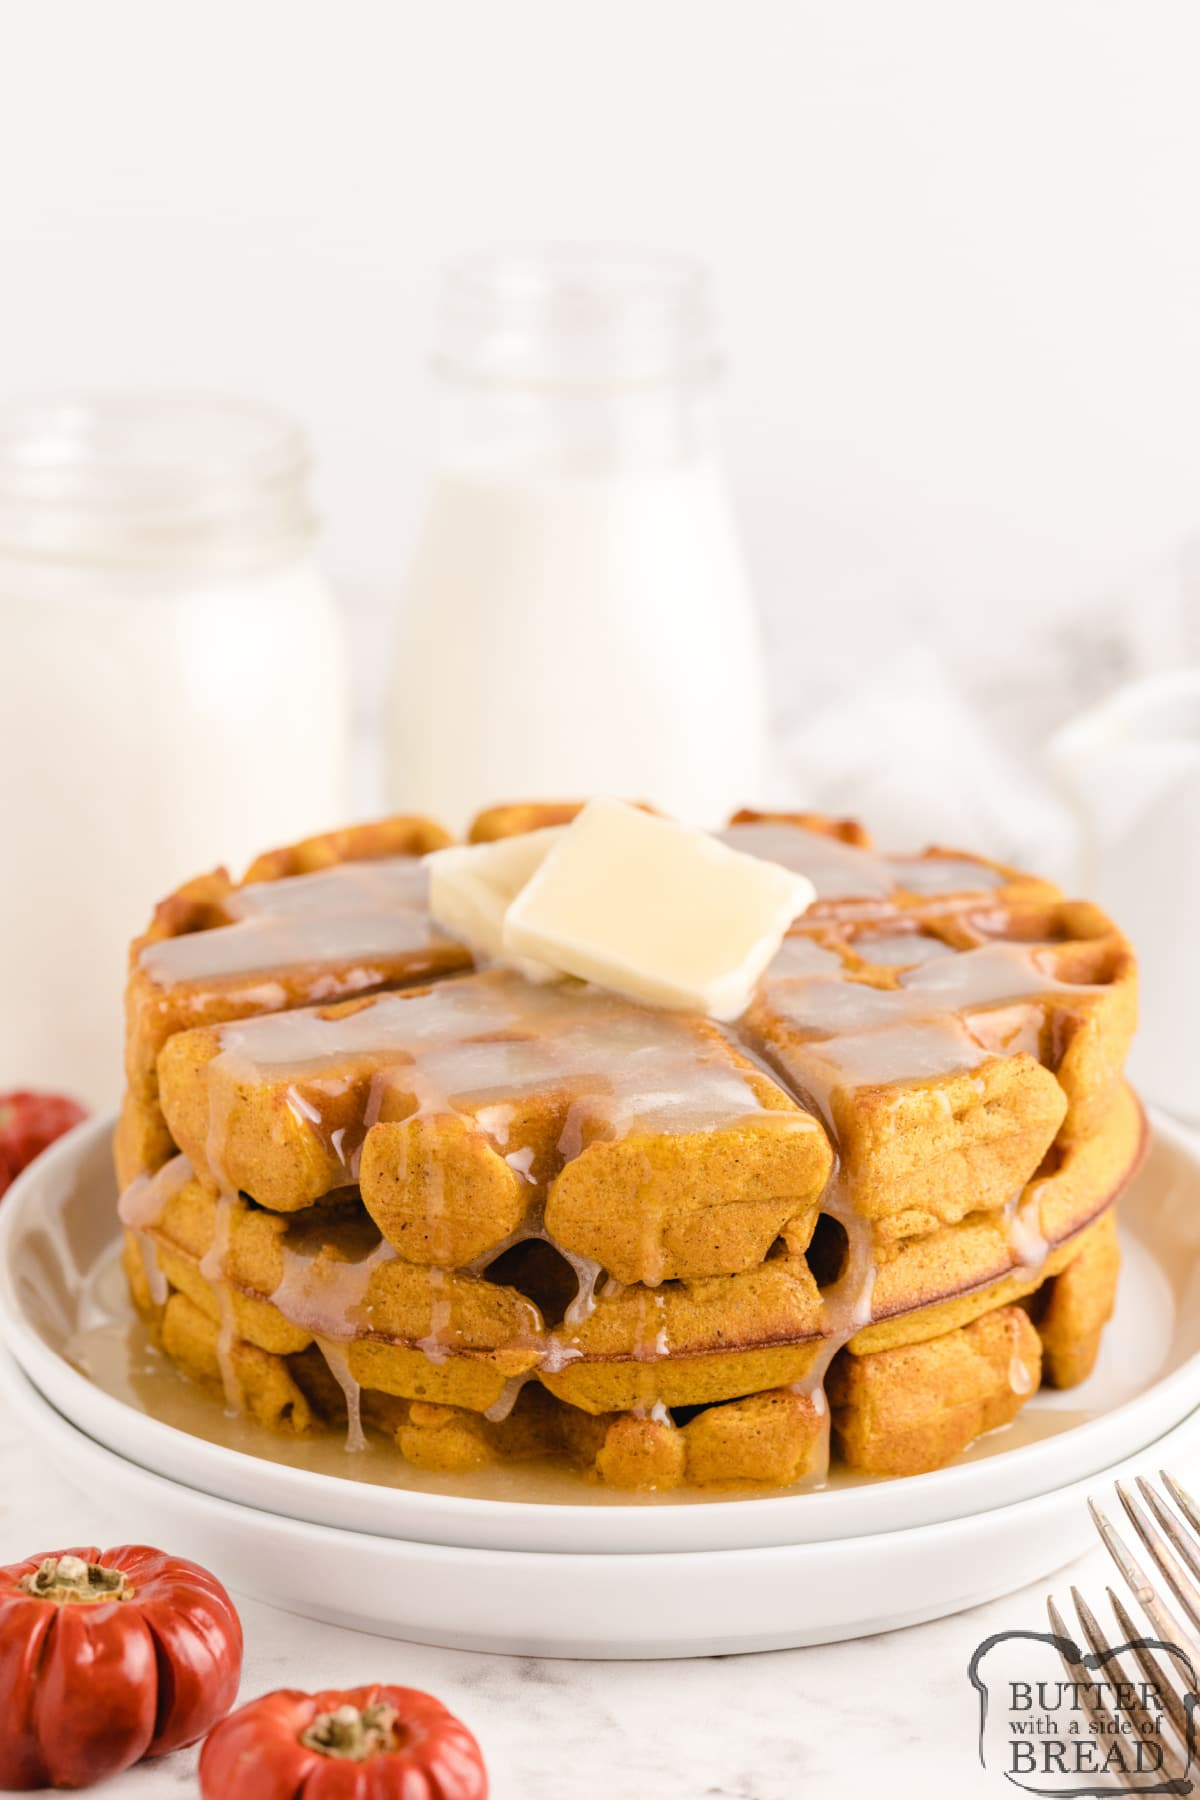 Perfect Pumpkin Waffles are a favorite fall breakfast. Easy pumpkin waffle recipe made with canned pumpkin and then topped with a simple homemade buttermilk syrup that is incredible!